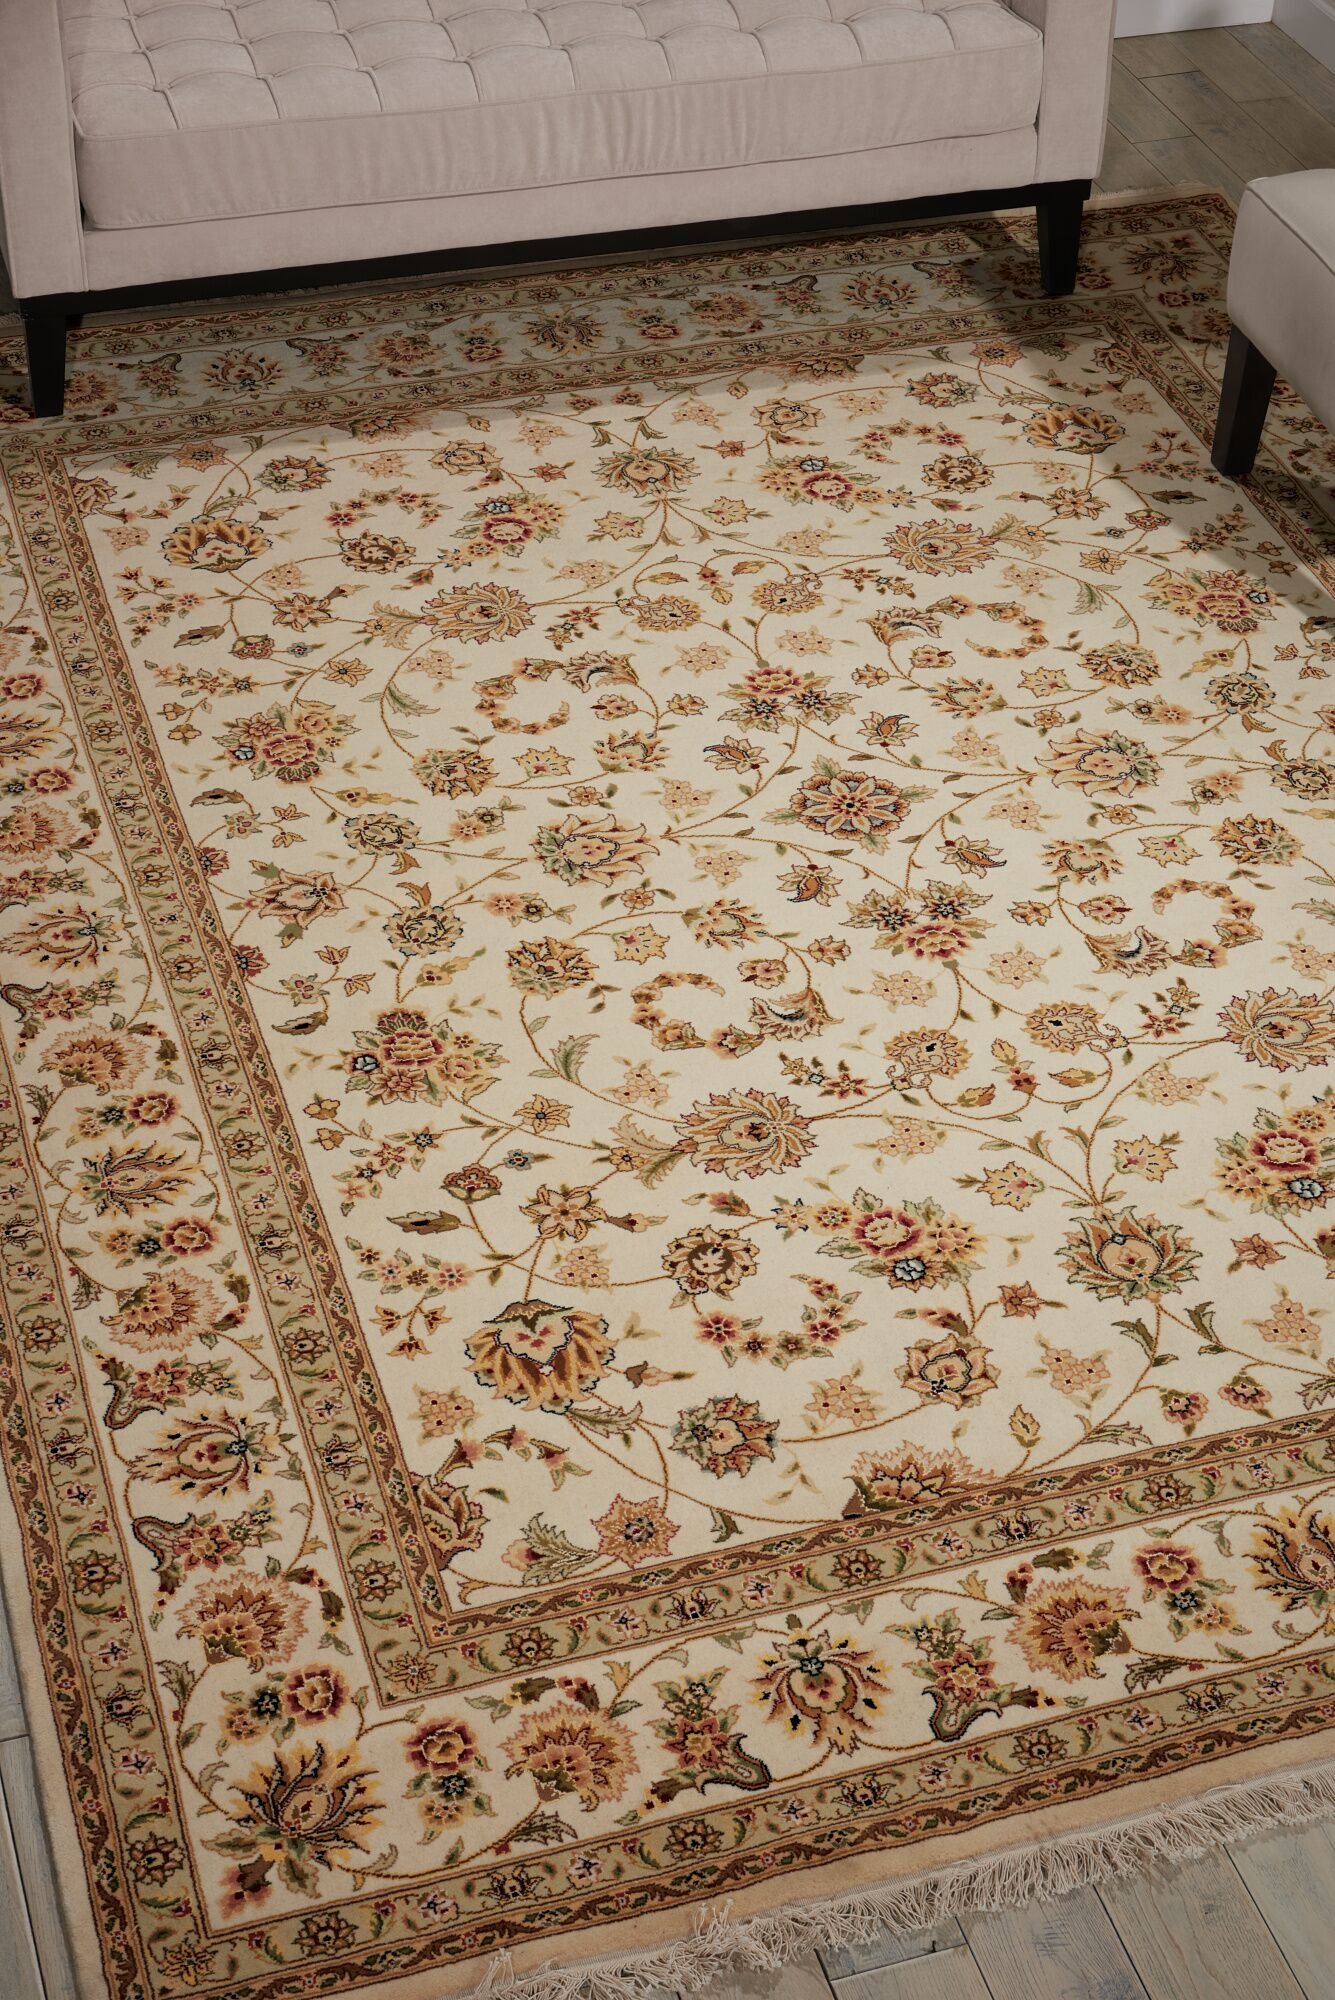 Dunluce Hand-Knotted Wool Ivory/Beige  Area Rug Rug Size: Rectangle 8'6